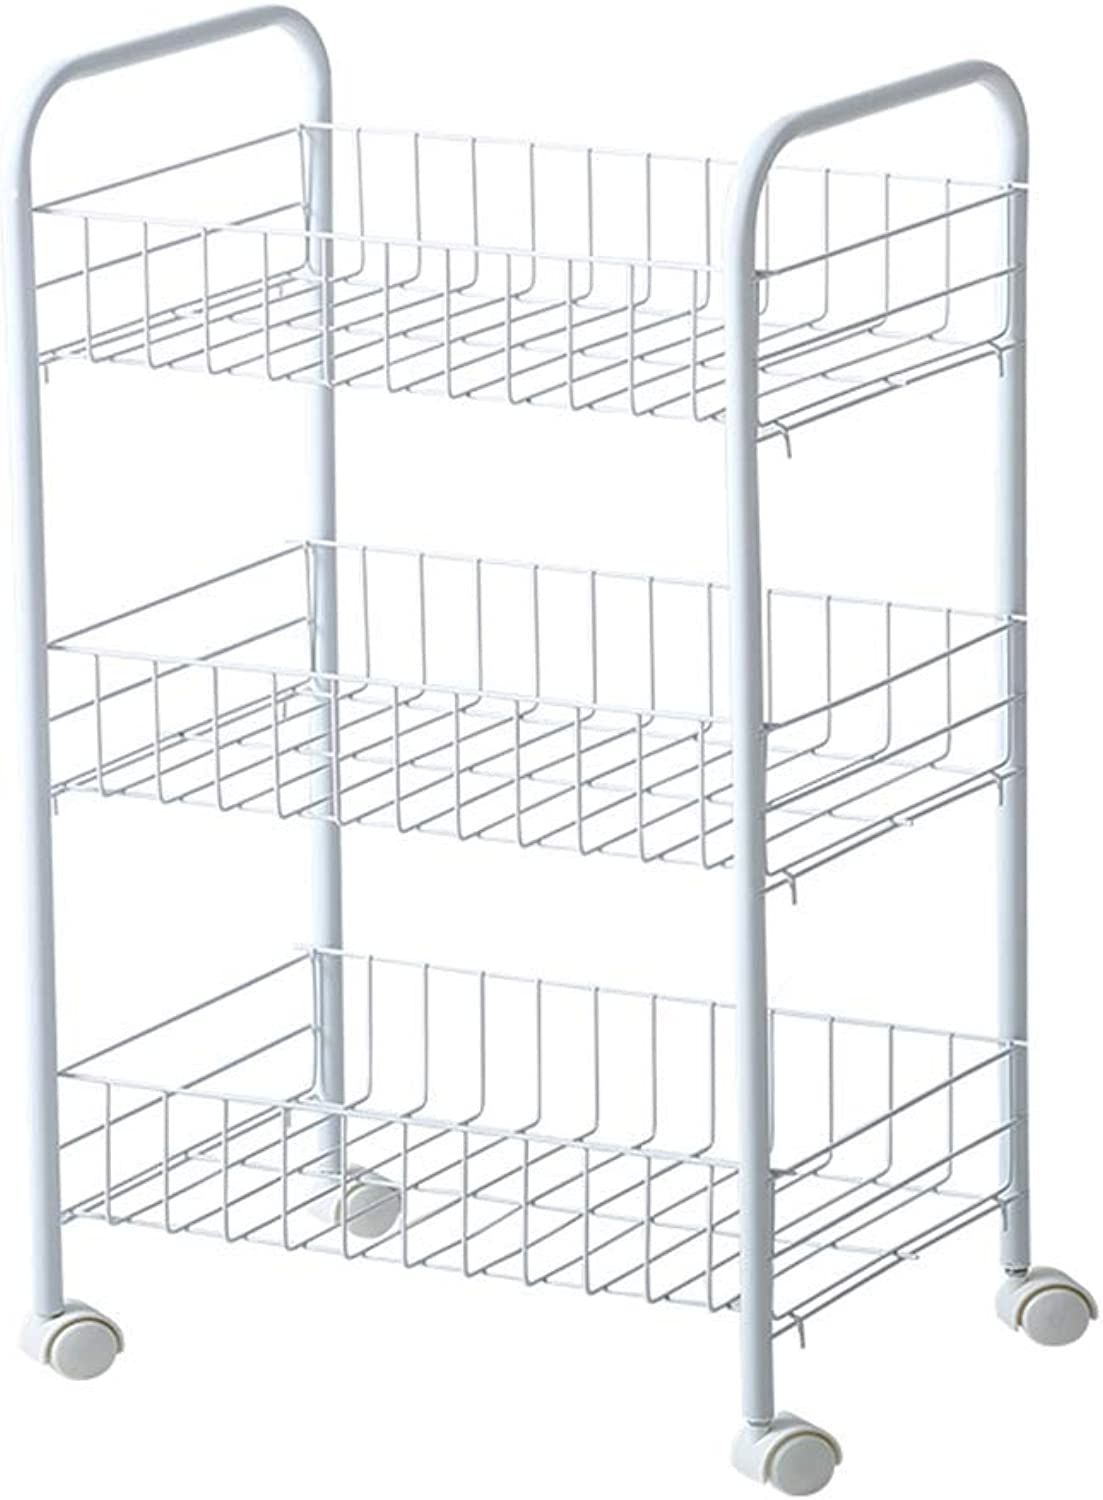 Storage Trolleys Rolling Service, Kitchen Vegetable and Fruit Removable Shelf, Multifunctional Practical Bathroom Storage Rack with 4 Wheels, 3 Tiers